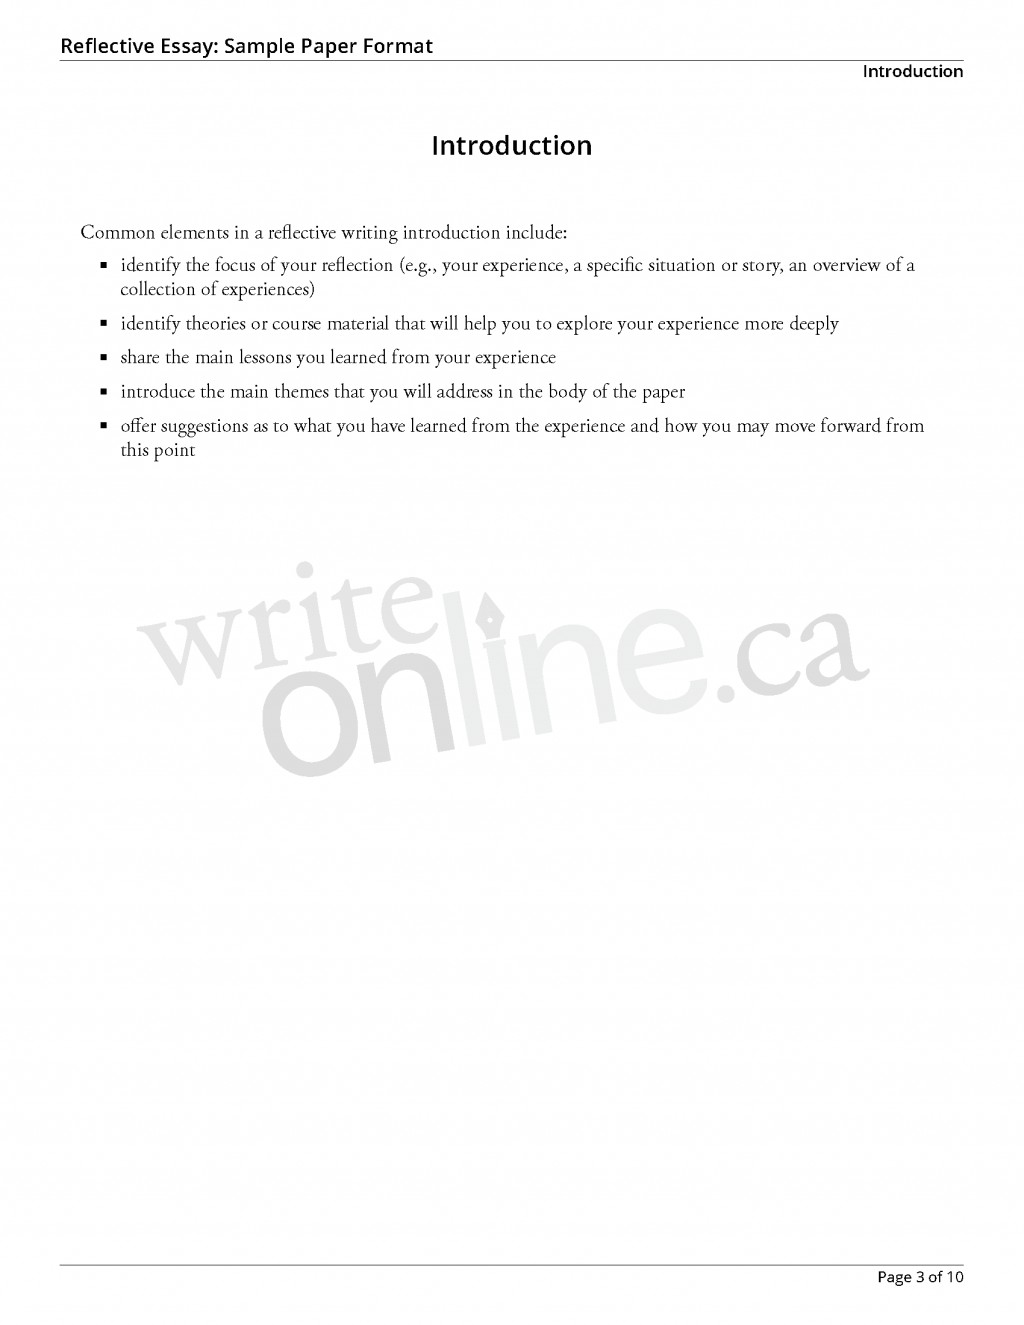 009 Reflectiveessay Sample Page 3 Essay Example How To Start Reflective Surprising A Introduction Do You An Write For Large